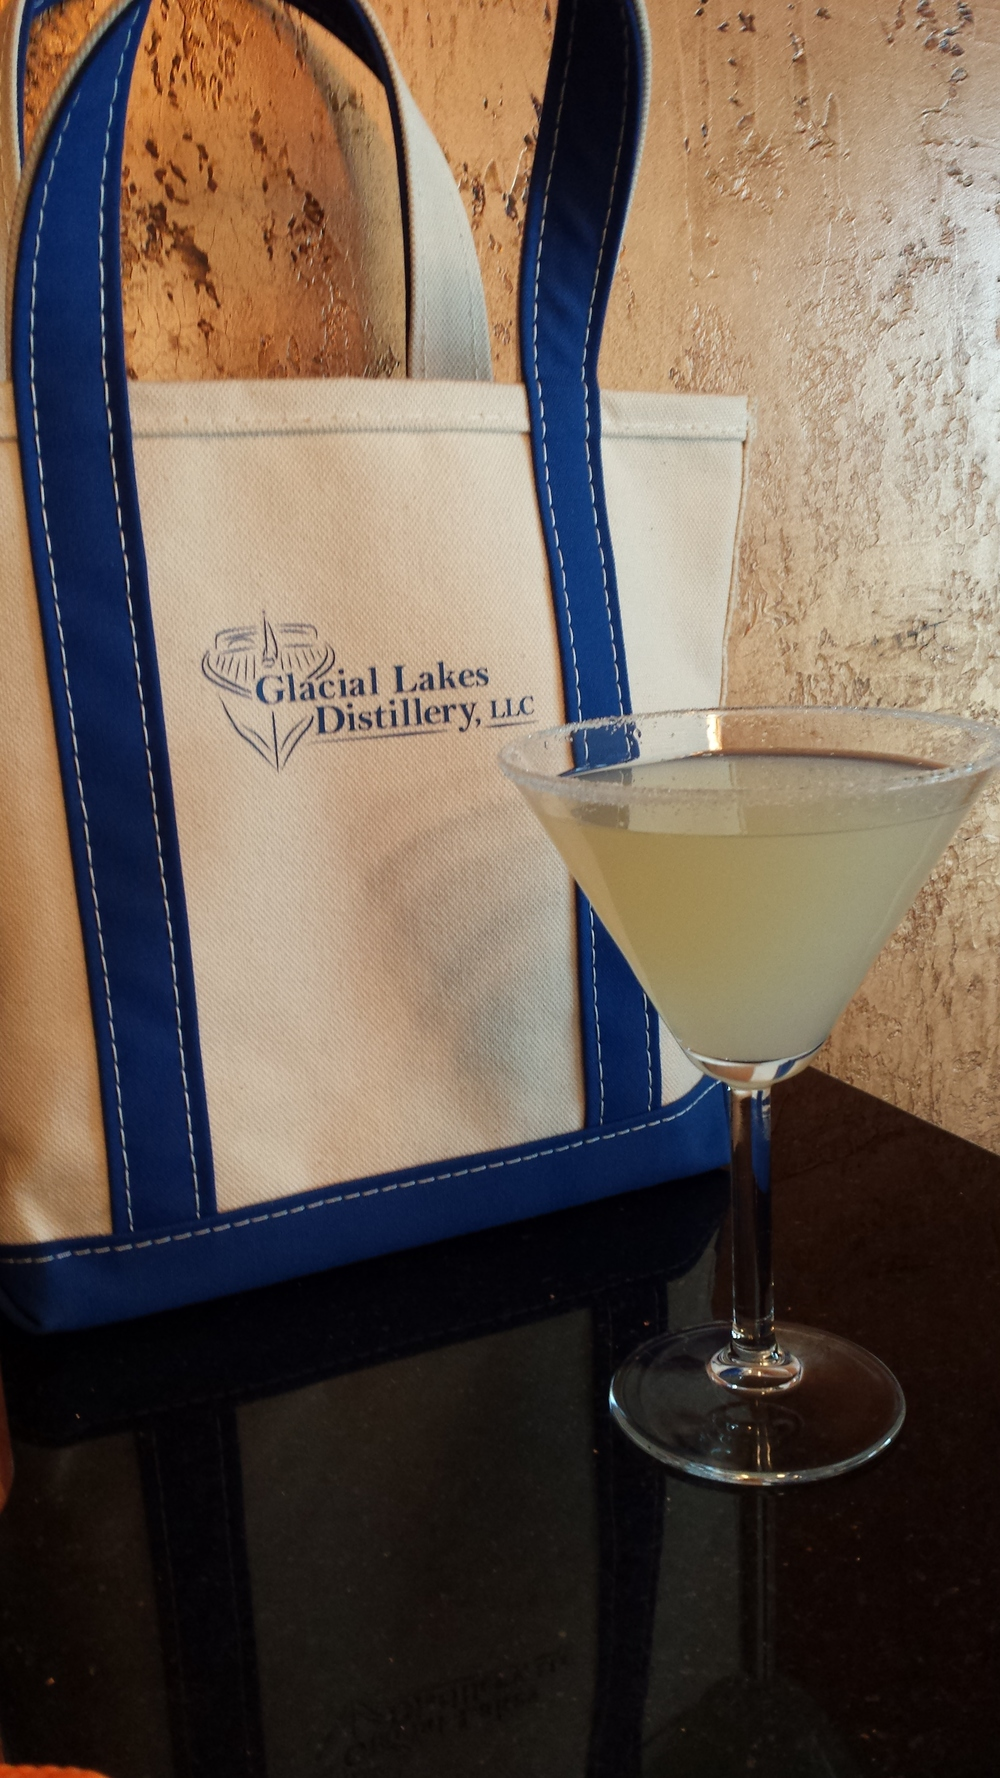 2 OZ Glacial Lakes Vodka   1 OZ Real Lemon Juice   1 OZ Simple Syrup   Rim martini glass with lemon juice and sugar   Shake over ice and pour into glass Enjoy!